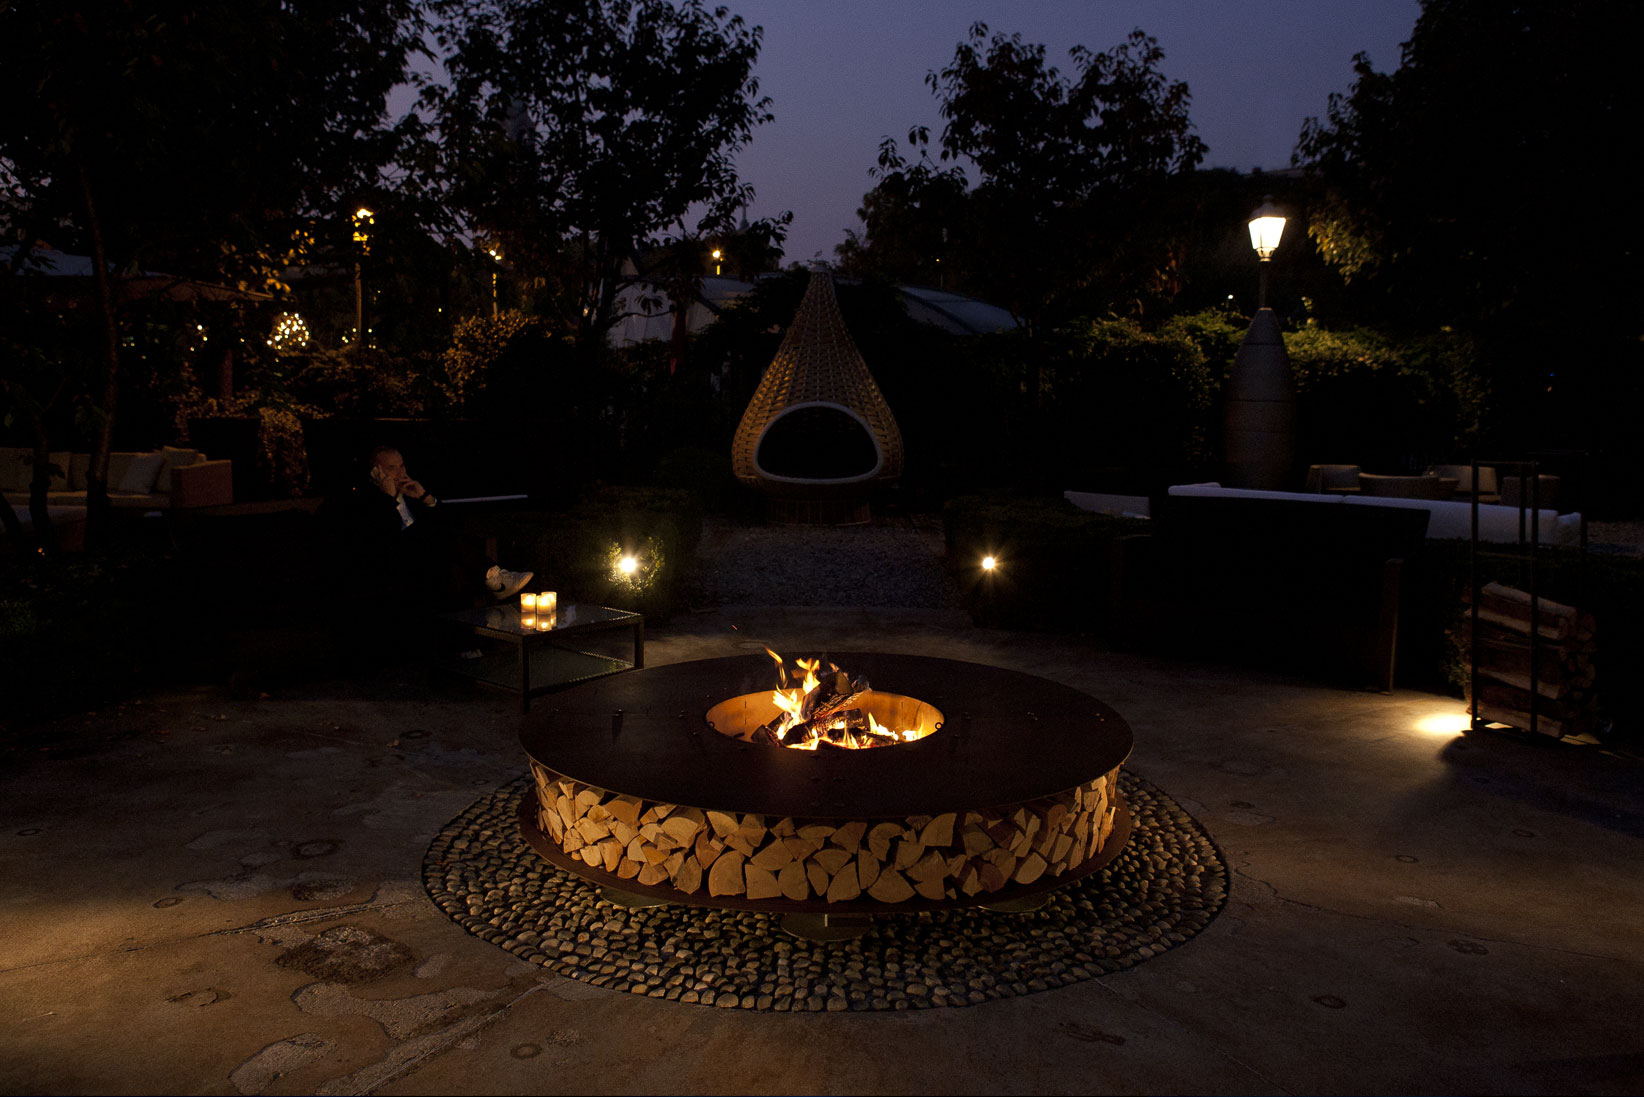 Outdoor Firepit Zero by AK47